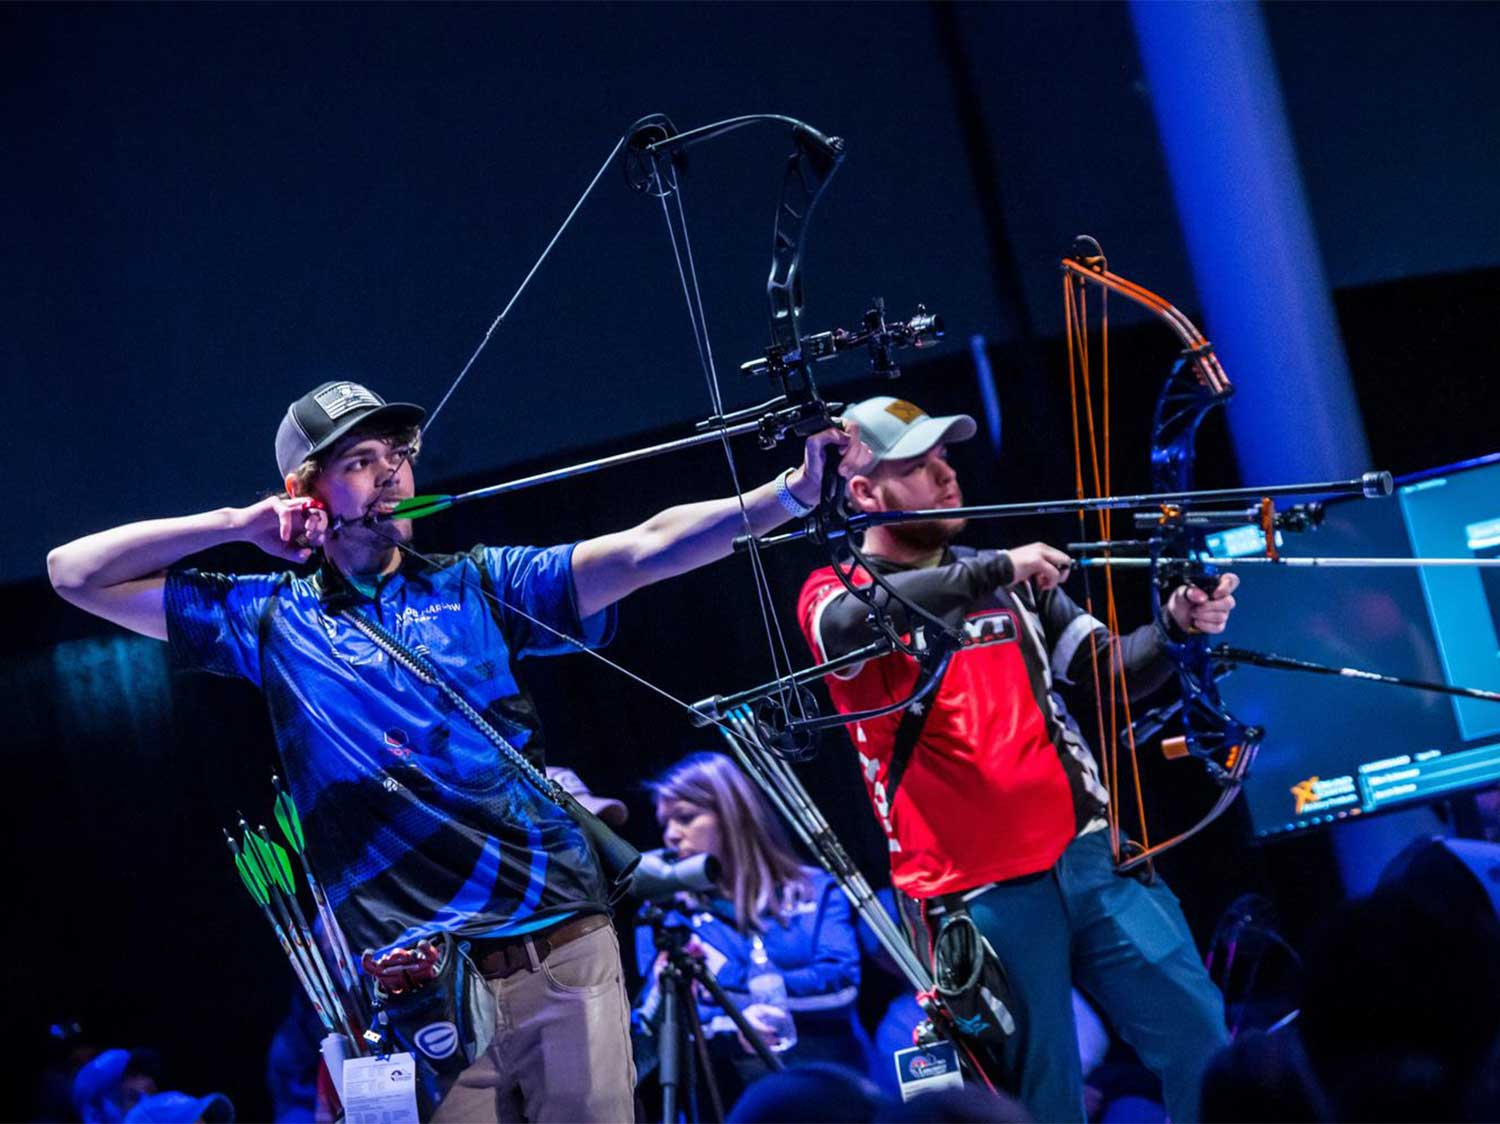 3 Archery Tournaments Where You Can Compete With the Pros